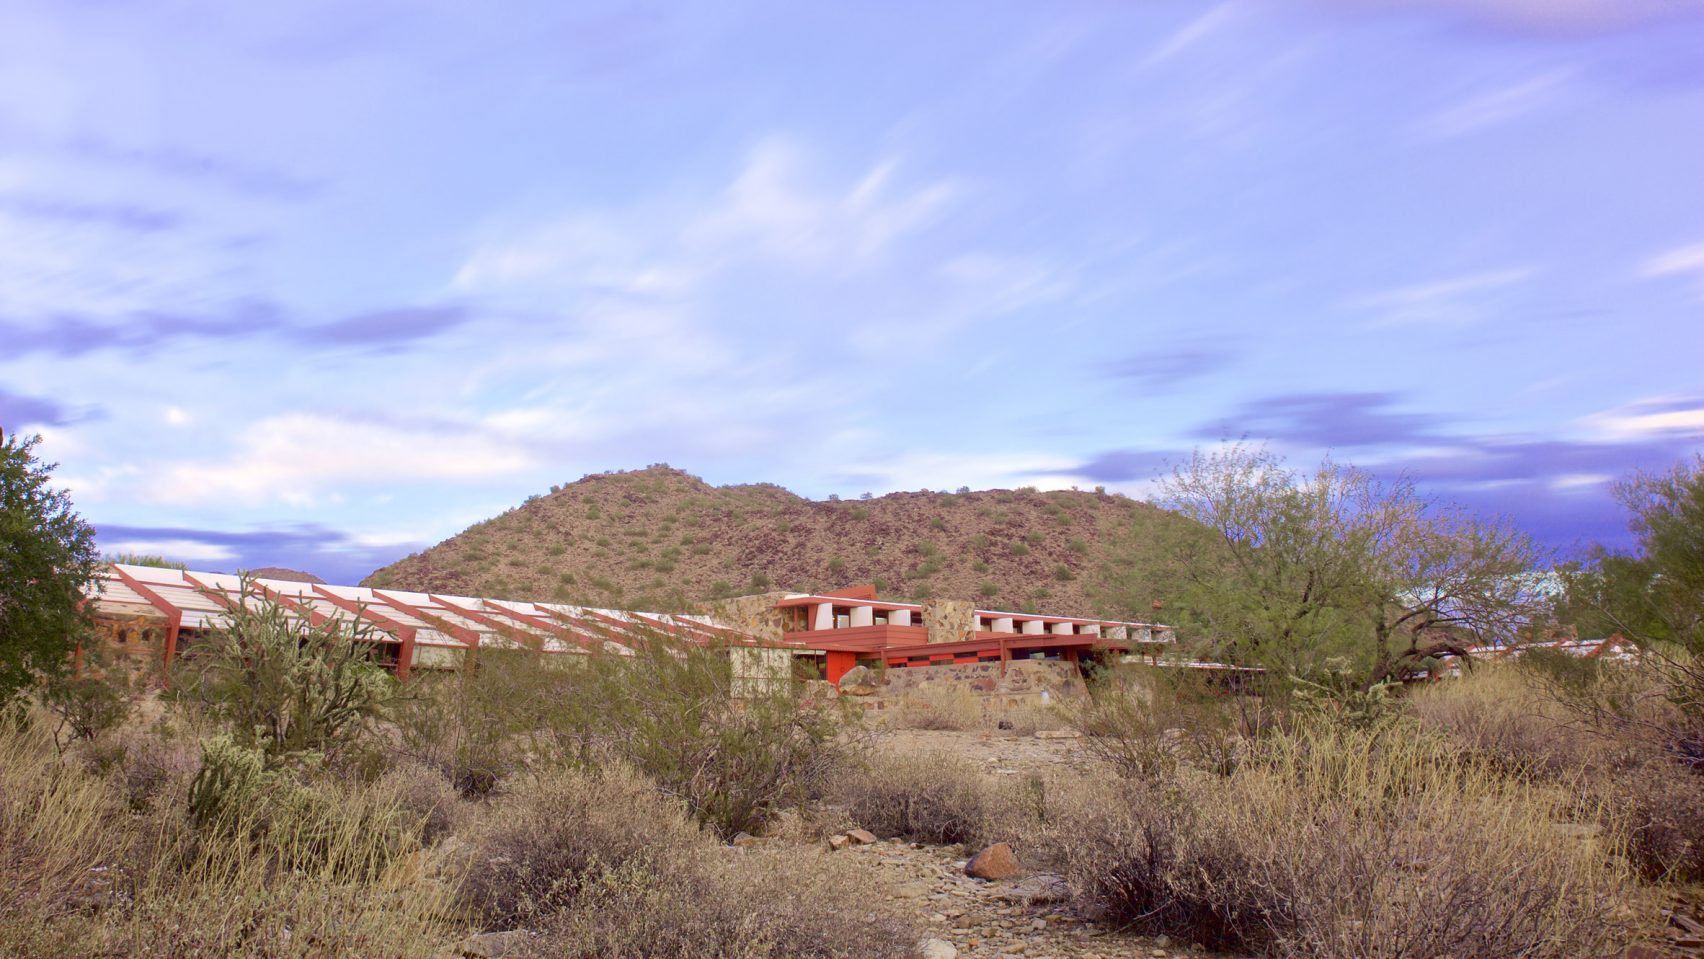 Taliesin west frank lloyd wright school of architecture 150th birthday dezeen hero a 1704x959